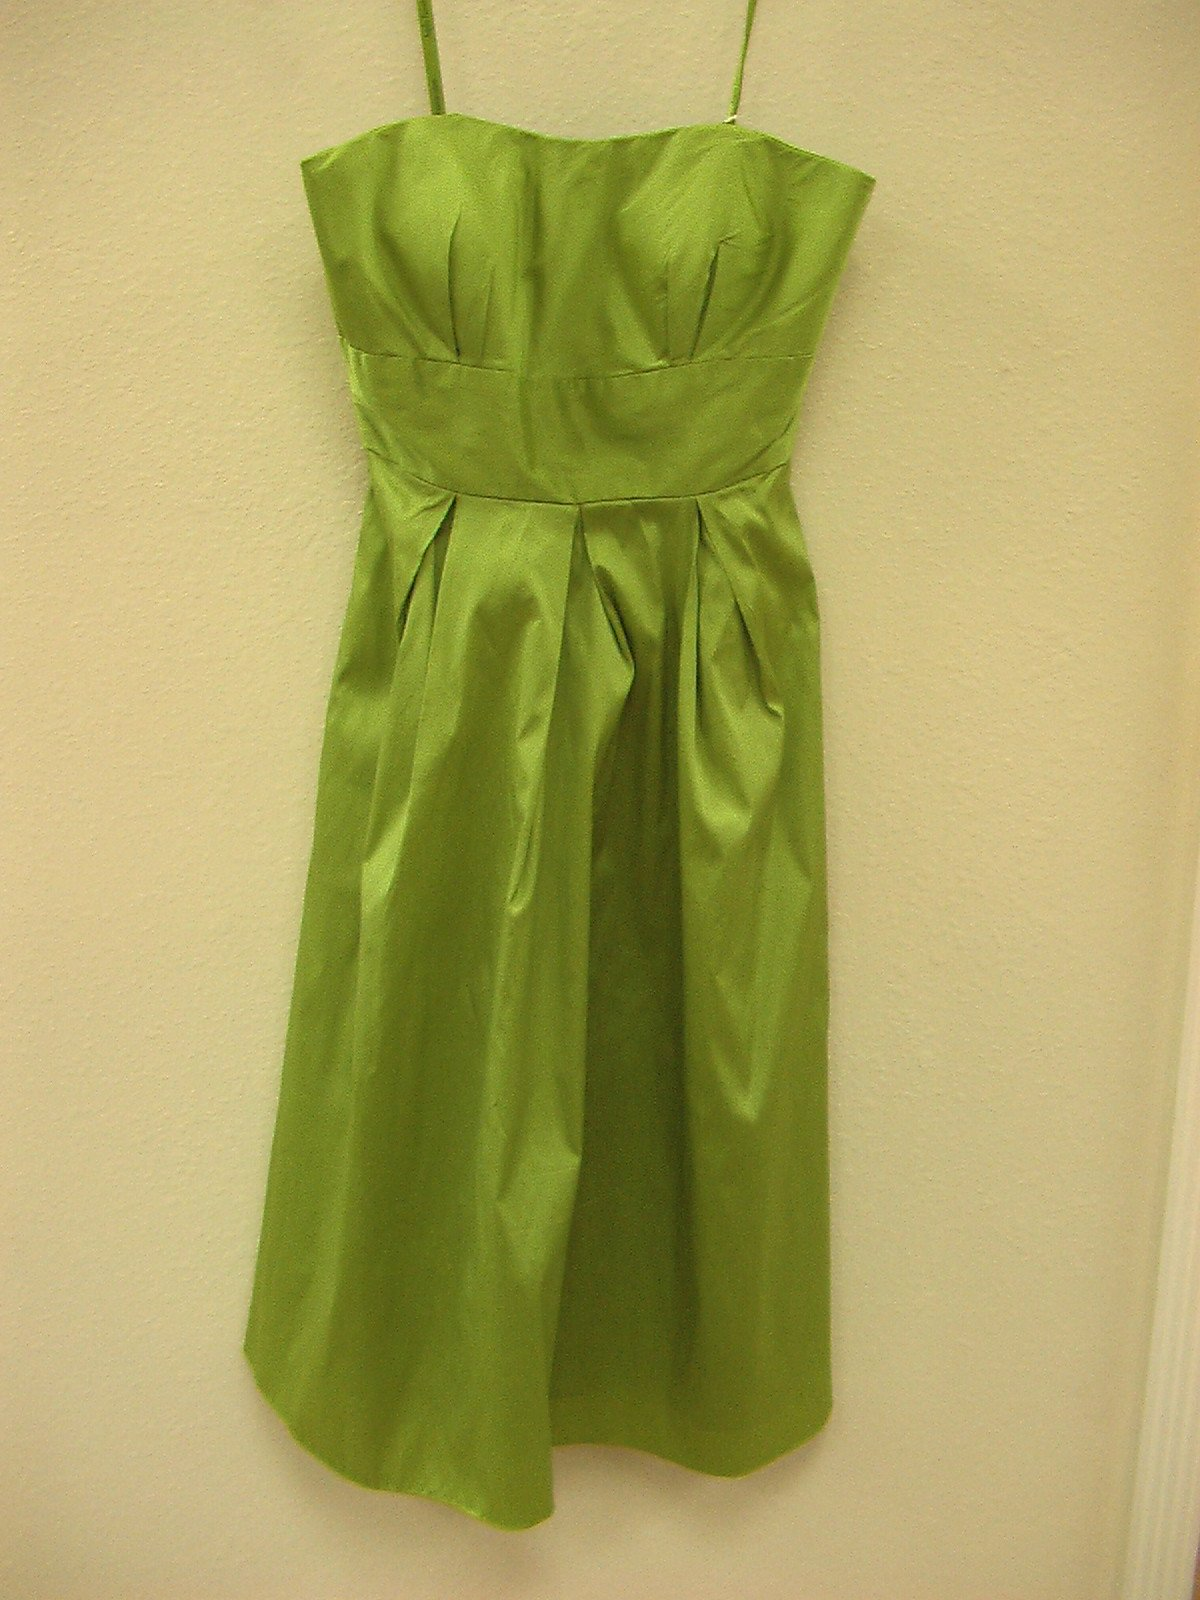 Mori Lee Angelina Faccenda 20106 Pistachio size 8 In Stock Bridesmaid Dress - Tom's Bridal